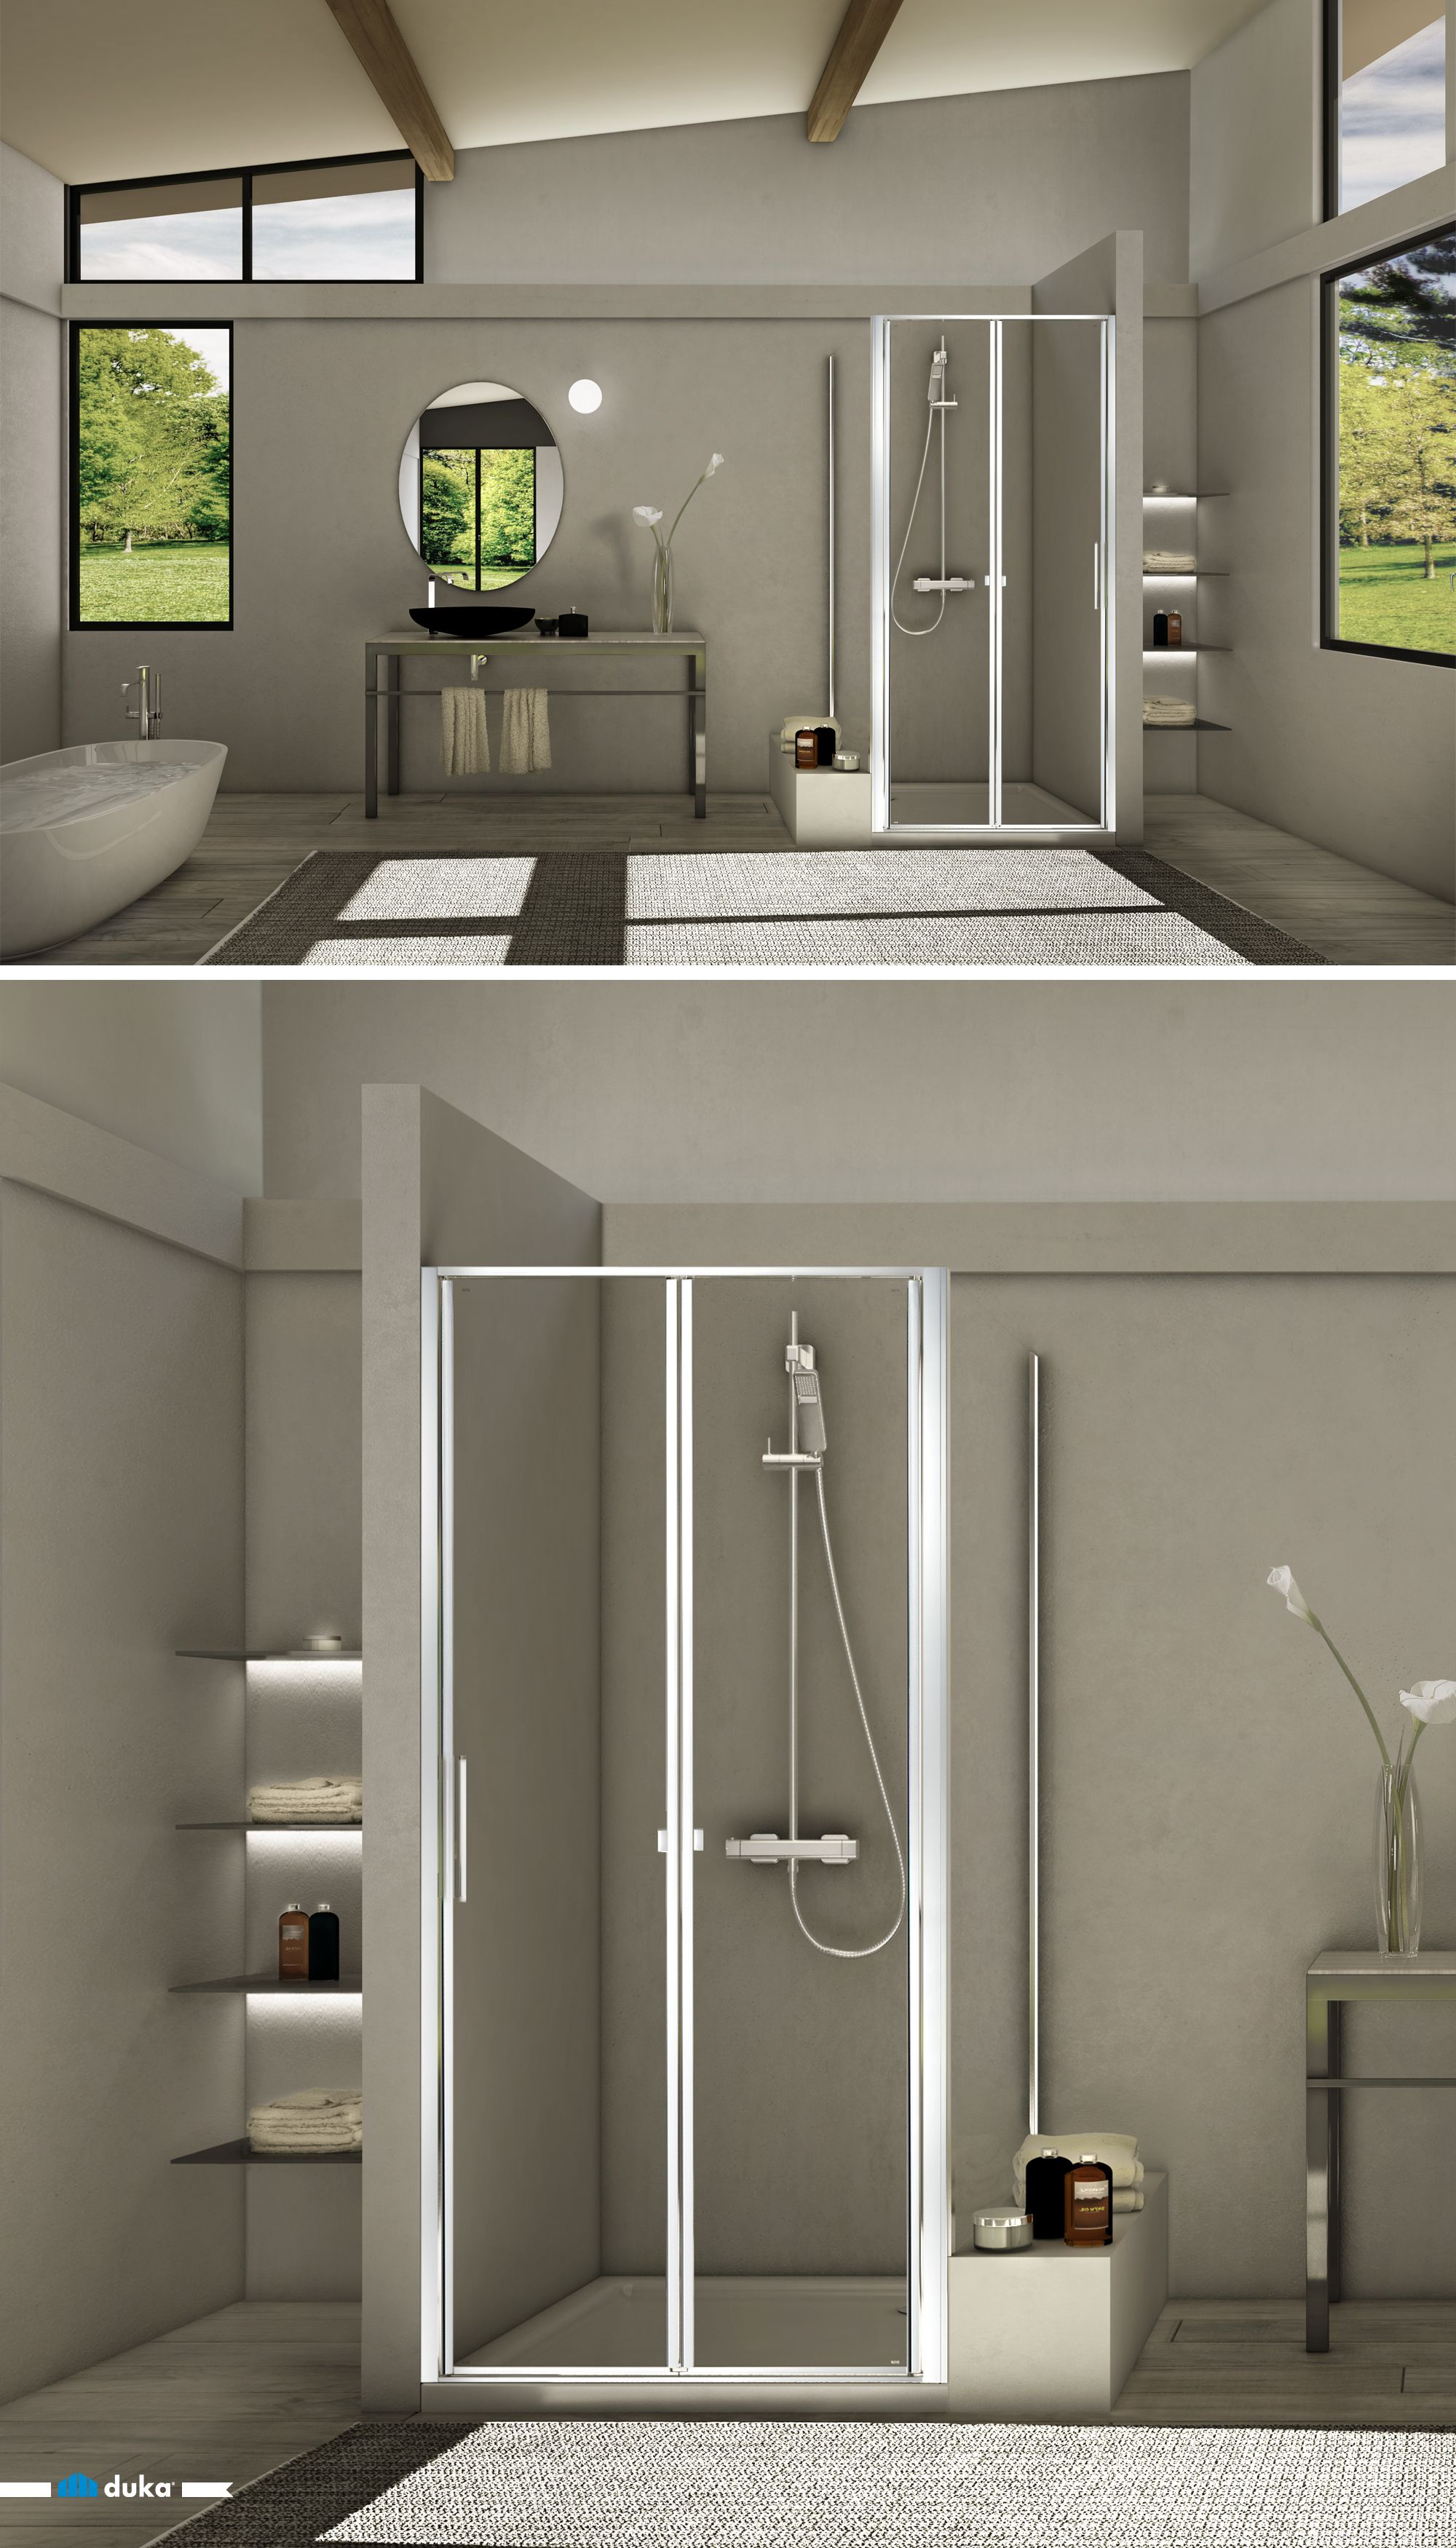 stila 2000 • a shower enclosure that stands out thanks to its combination of design and simplicity. Notice this folding door with two-pieces in niche. It enriches your bathroom space with a unique showering emotion.